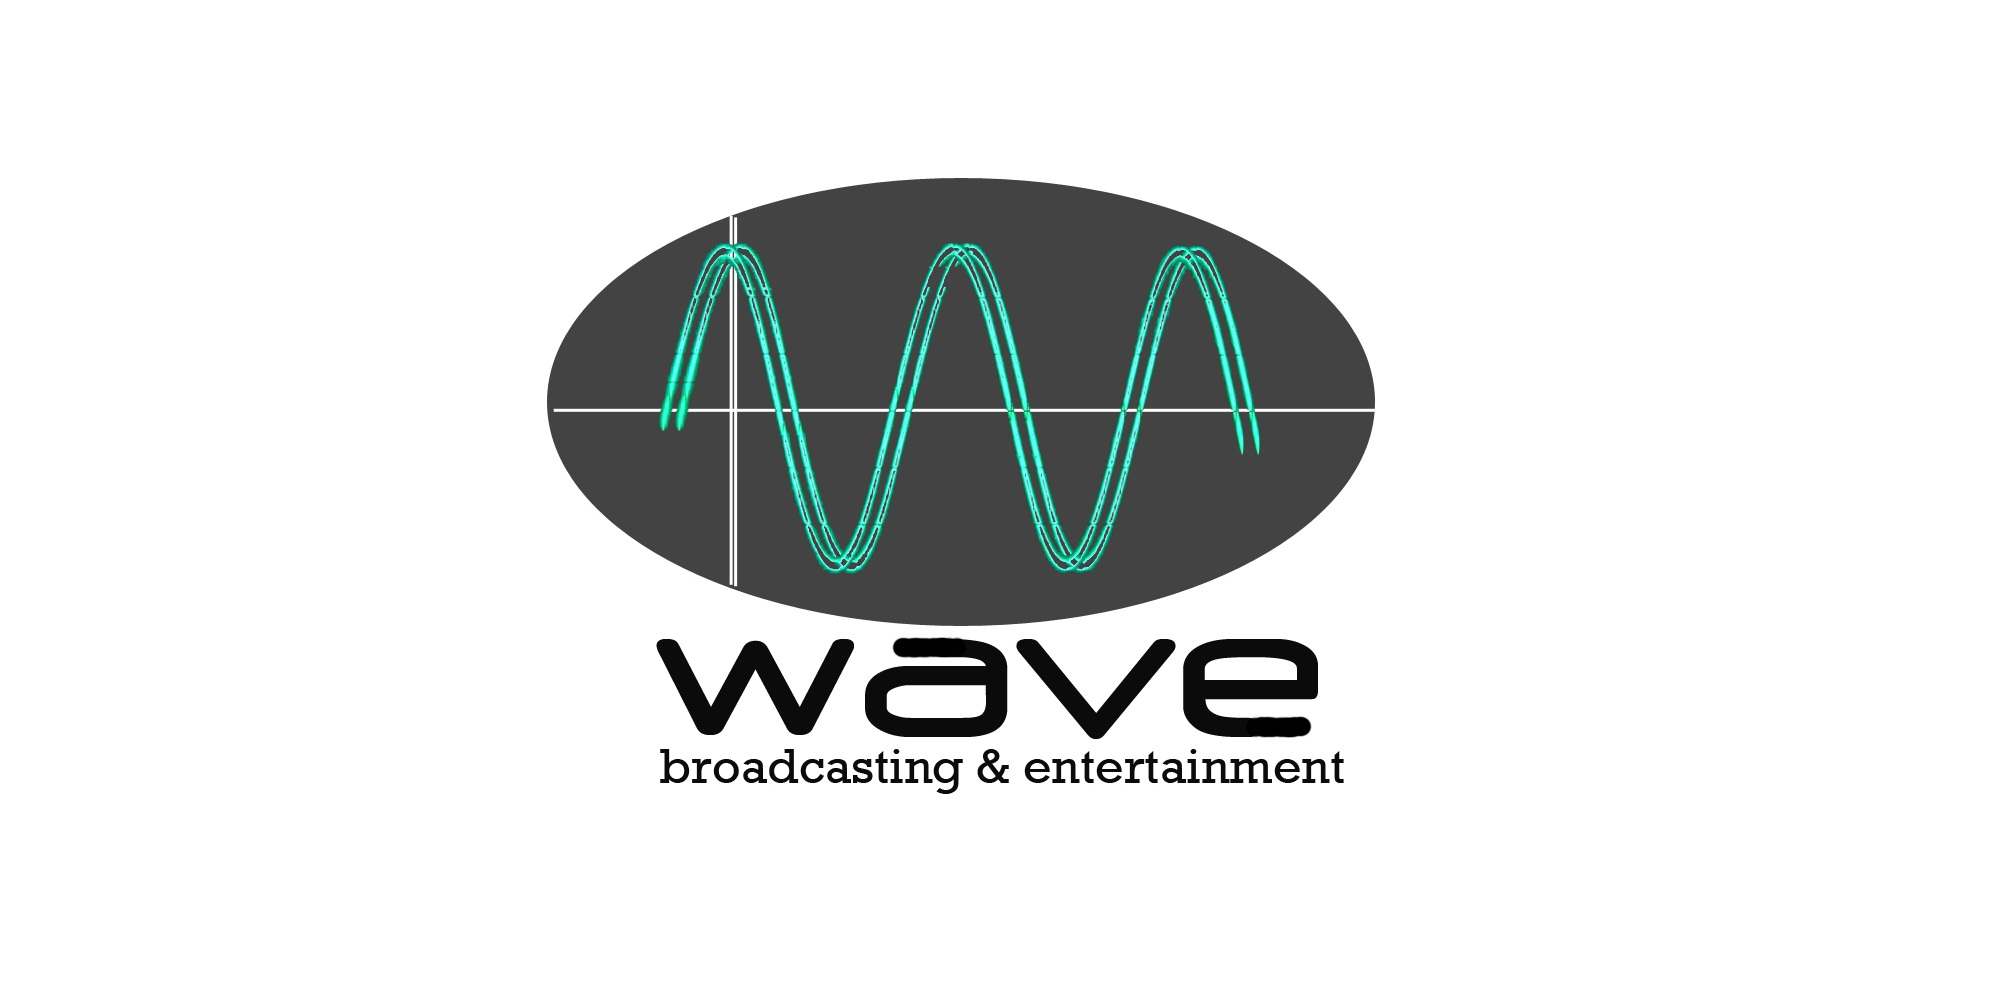 Wave Broadcasting & Entertainment | Real Good Local Garden Route Radio